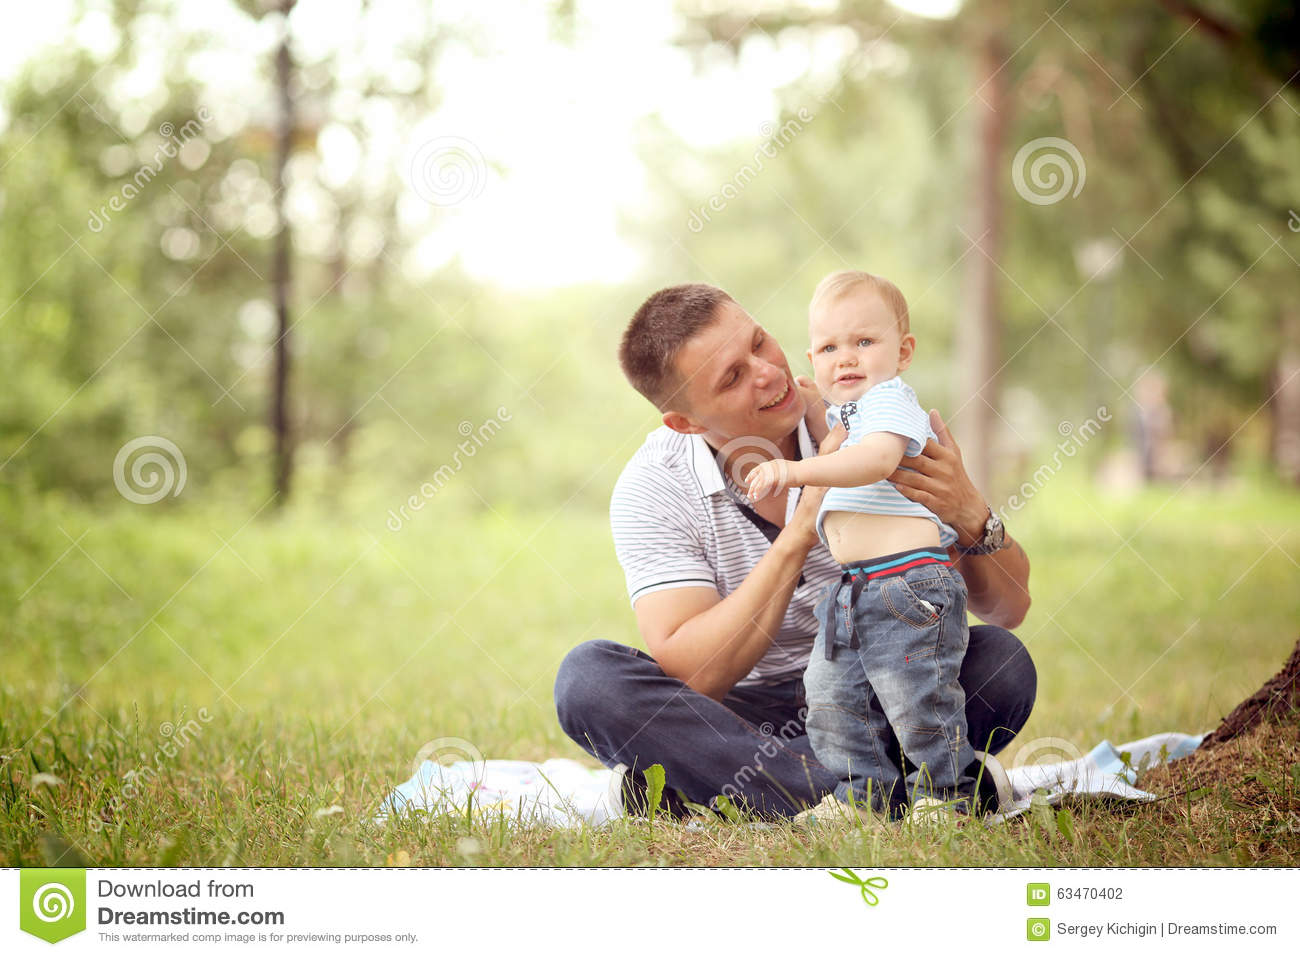 Baby boy playing in the park with dad